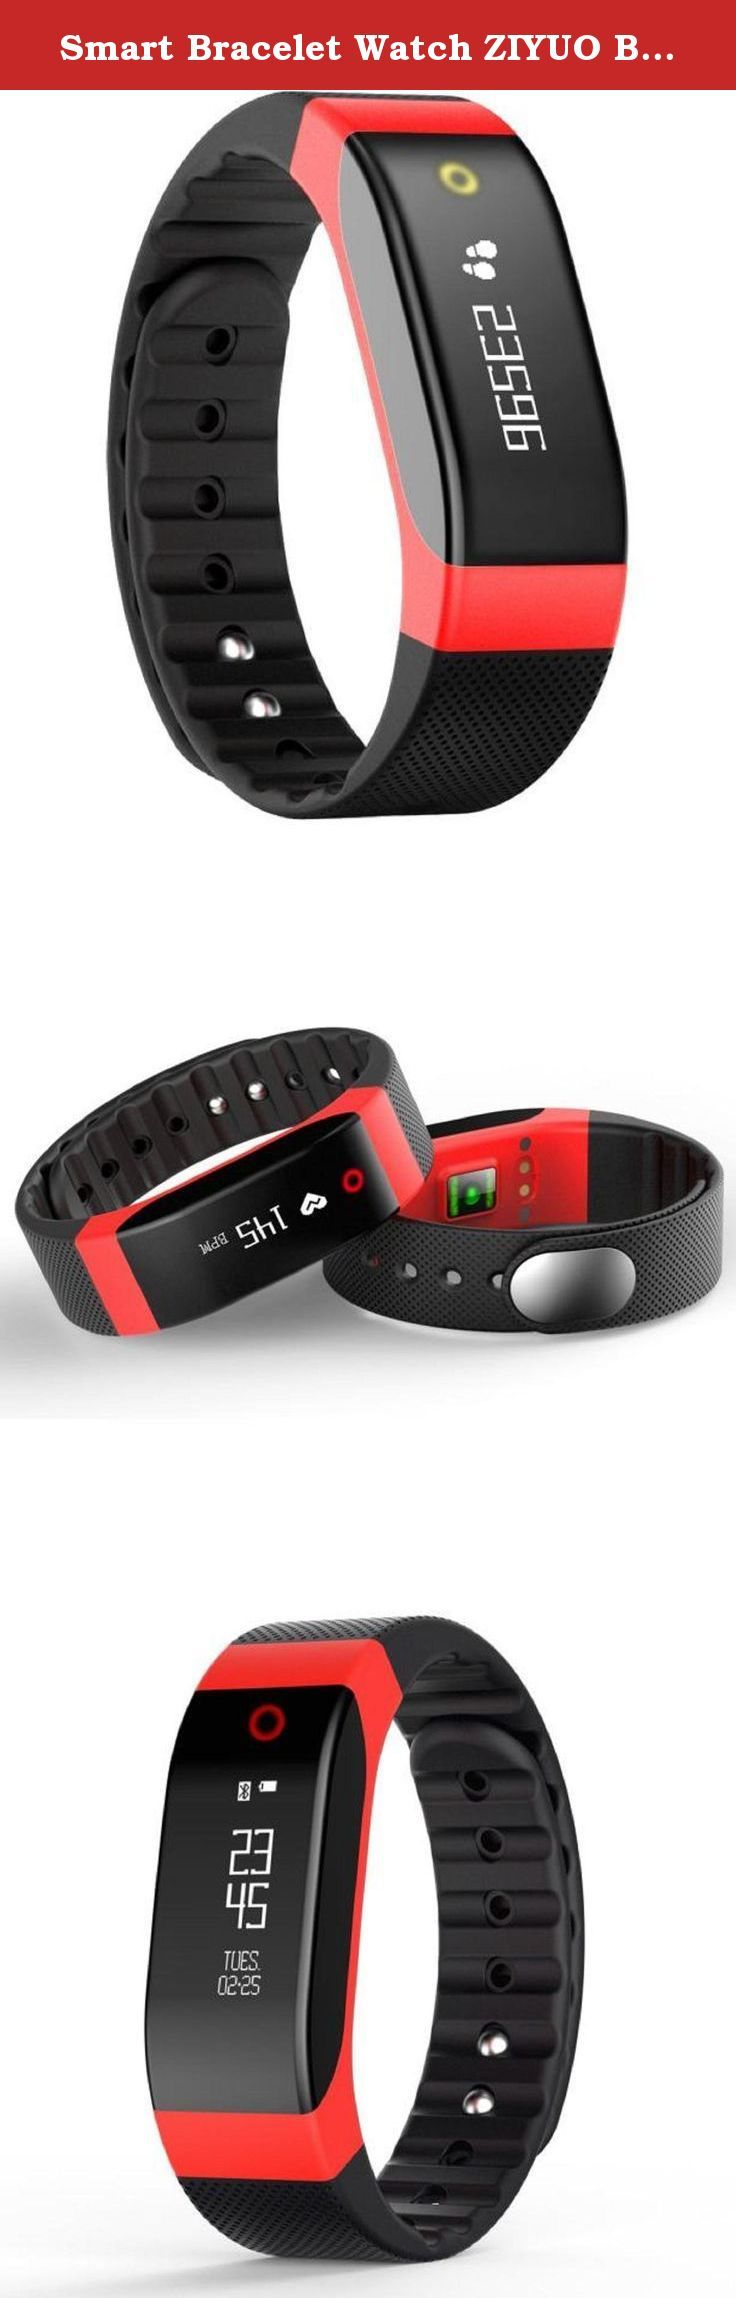 Smart Bracelet Watch ZIYUO Bluetooth Colorful Breathing Light Smart Touch Bracelet Fitness Wristband Heart Rate Monitor Pedometer, calories, distance Tracking (Red). Note: Before you use it, you must download APP(sma). Before you purchase, you must confirm the band length suitable to you or not. Main Feature Heart Rate :Dynamic heart rate monitor 24 hours, test every 30 minutes Activity tracking :Pedometer, calories, distance Support:Sleep monitor ,Call notification,Message notification...